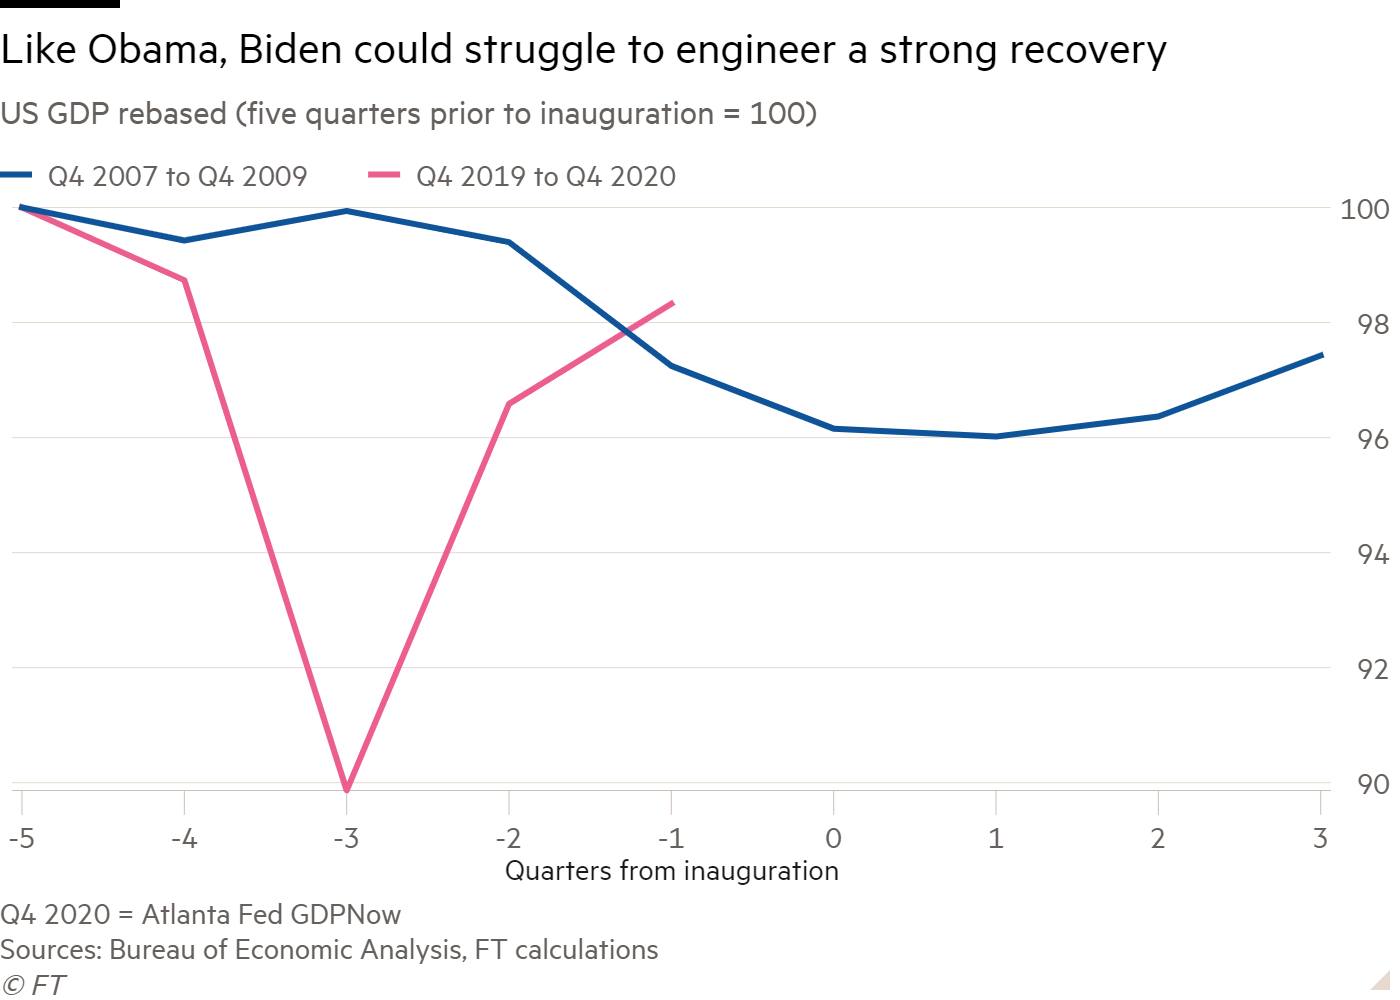 Line chart of US GDP rebased (five quarters prior to inauguration = 100) showing Like Obama, Biden could struggle to engineer a strong recovery